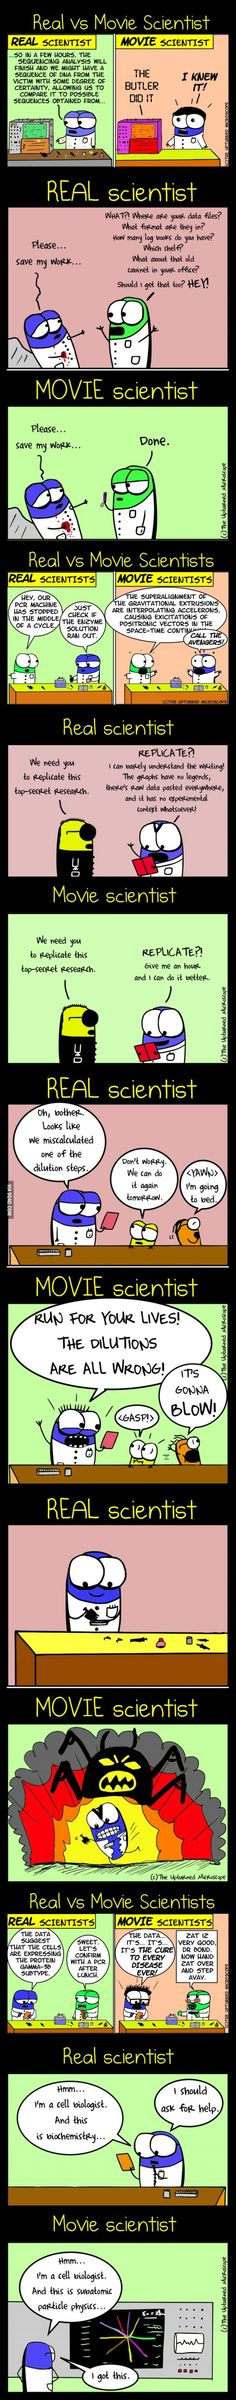 Real science vs movie science. As they say in the tech commercials, screens are simulated and sequences are shortened!